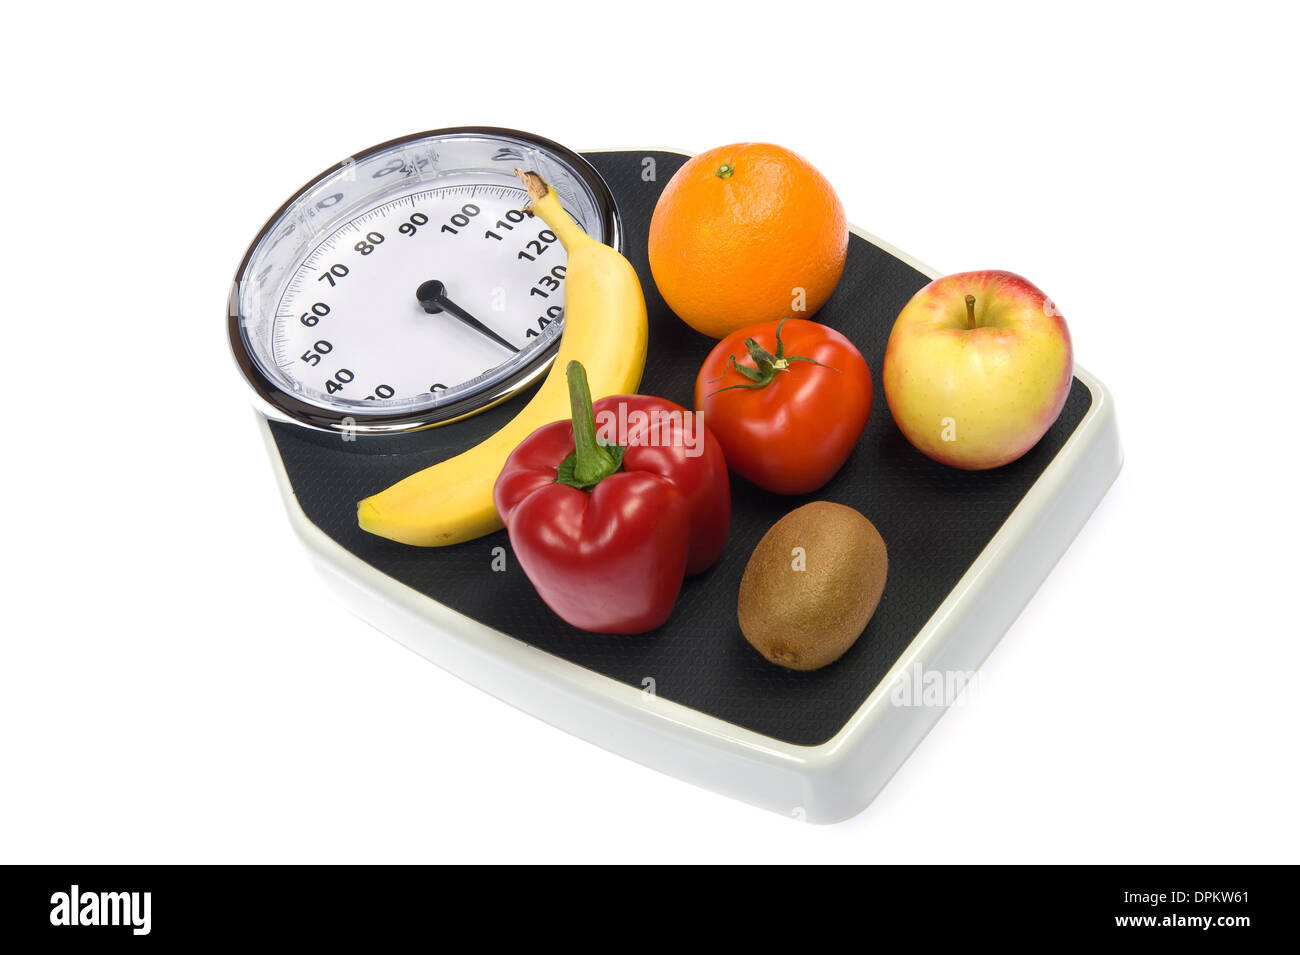 A weight scale with fruit - Stock Image